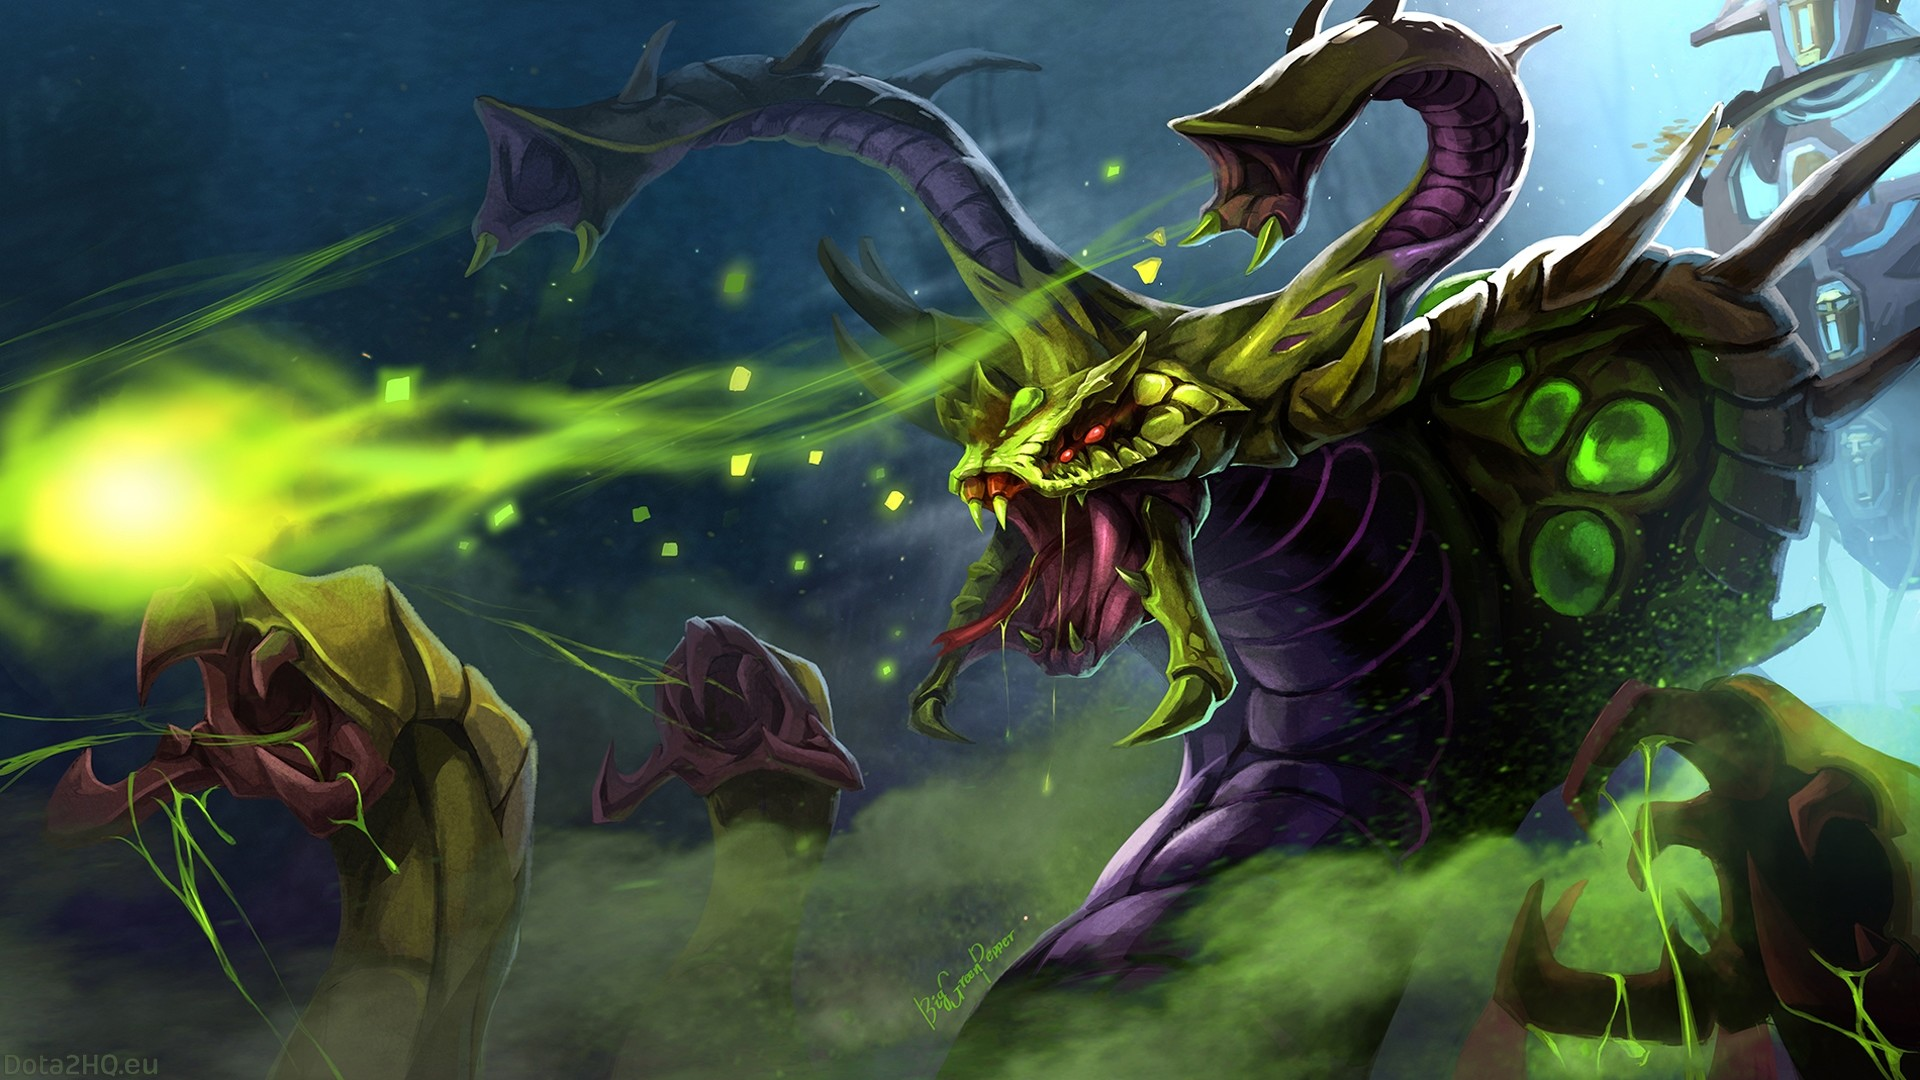 1920x1080 DOTA 2 Venomancer Desktop Wallpaper